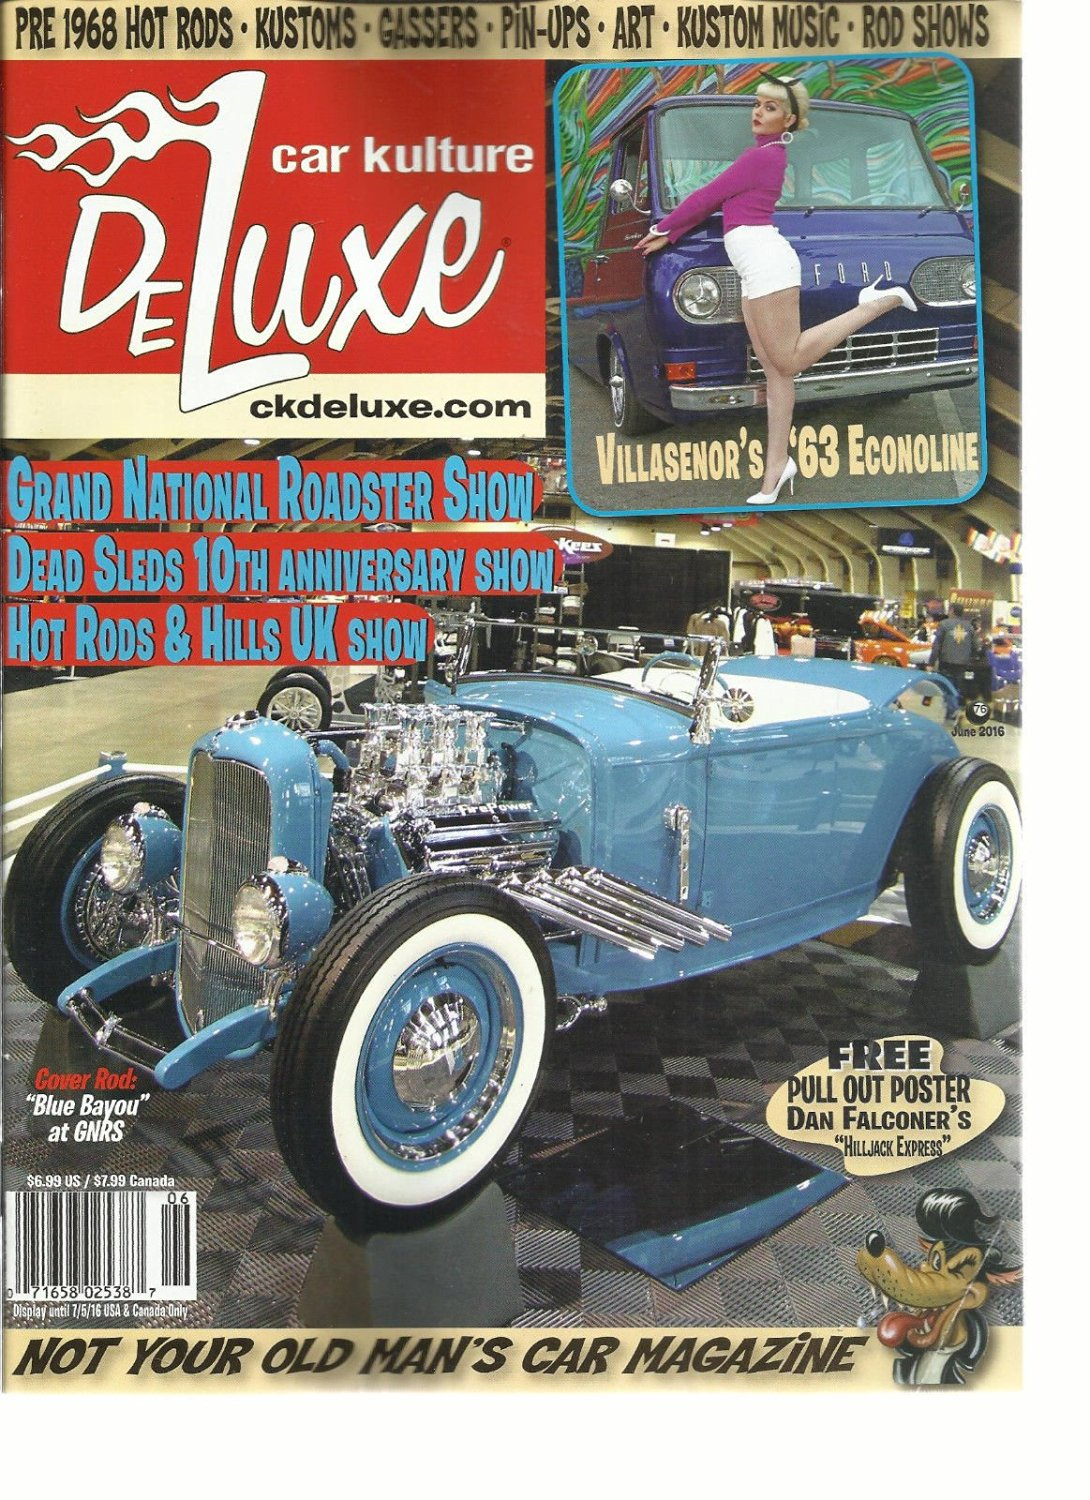 Buy CAR KULTURE DELUXE, ISSUE, 2016 NOT YOUR OLD MANS CAR MAGAZINE ...